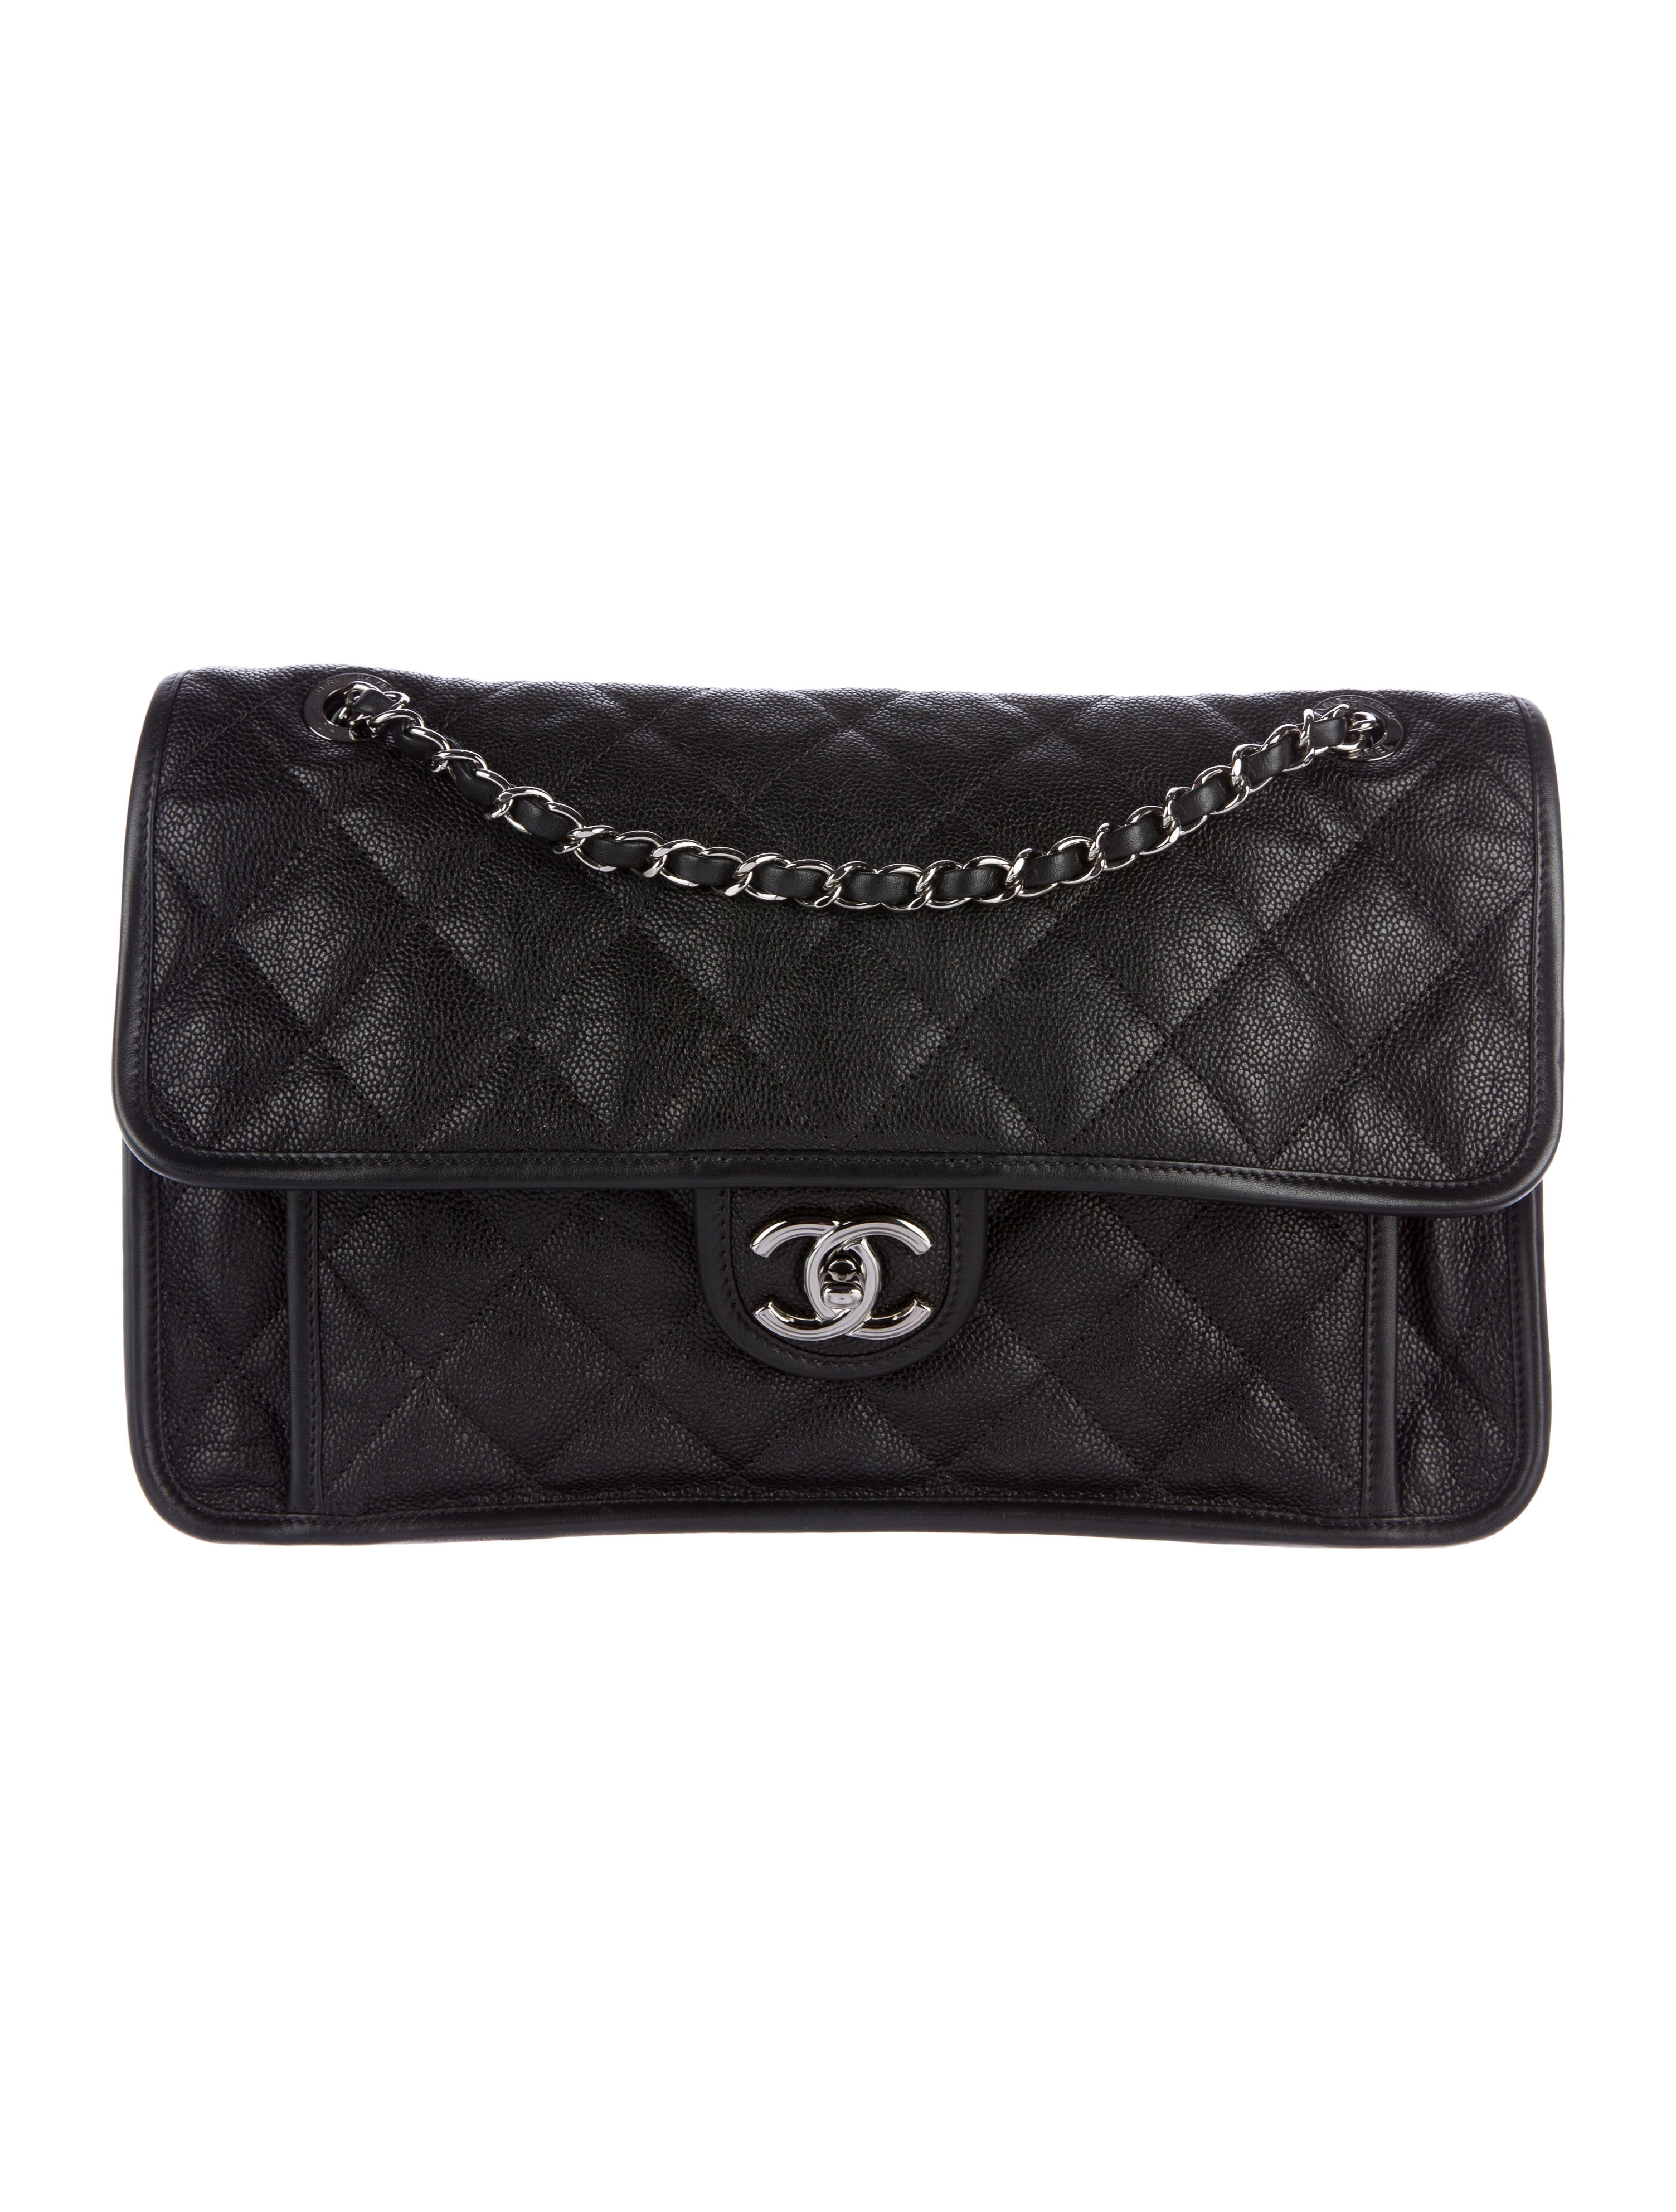 0ed50cce69f897 Chanel Large French Riviera Flap Bag - Handbags - CHA146144 | The RealReal